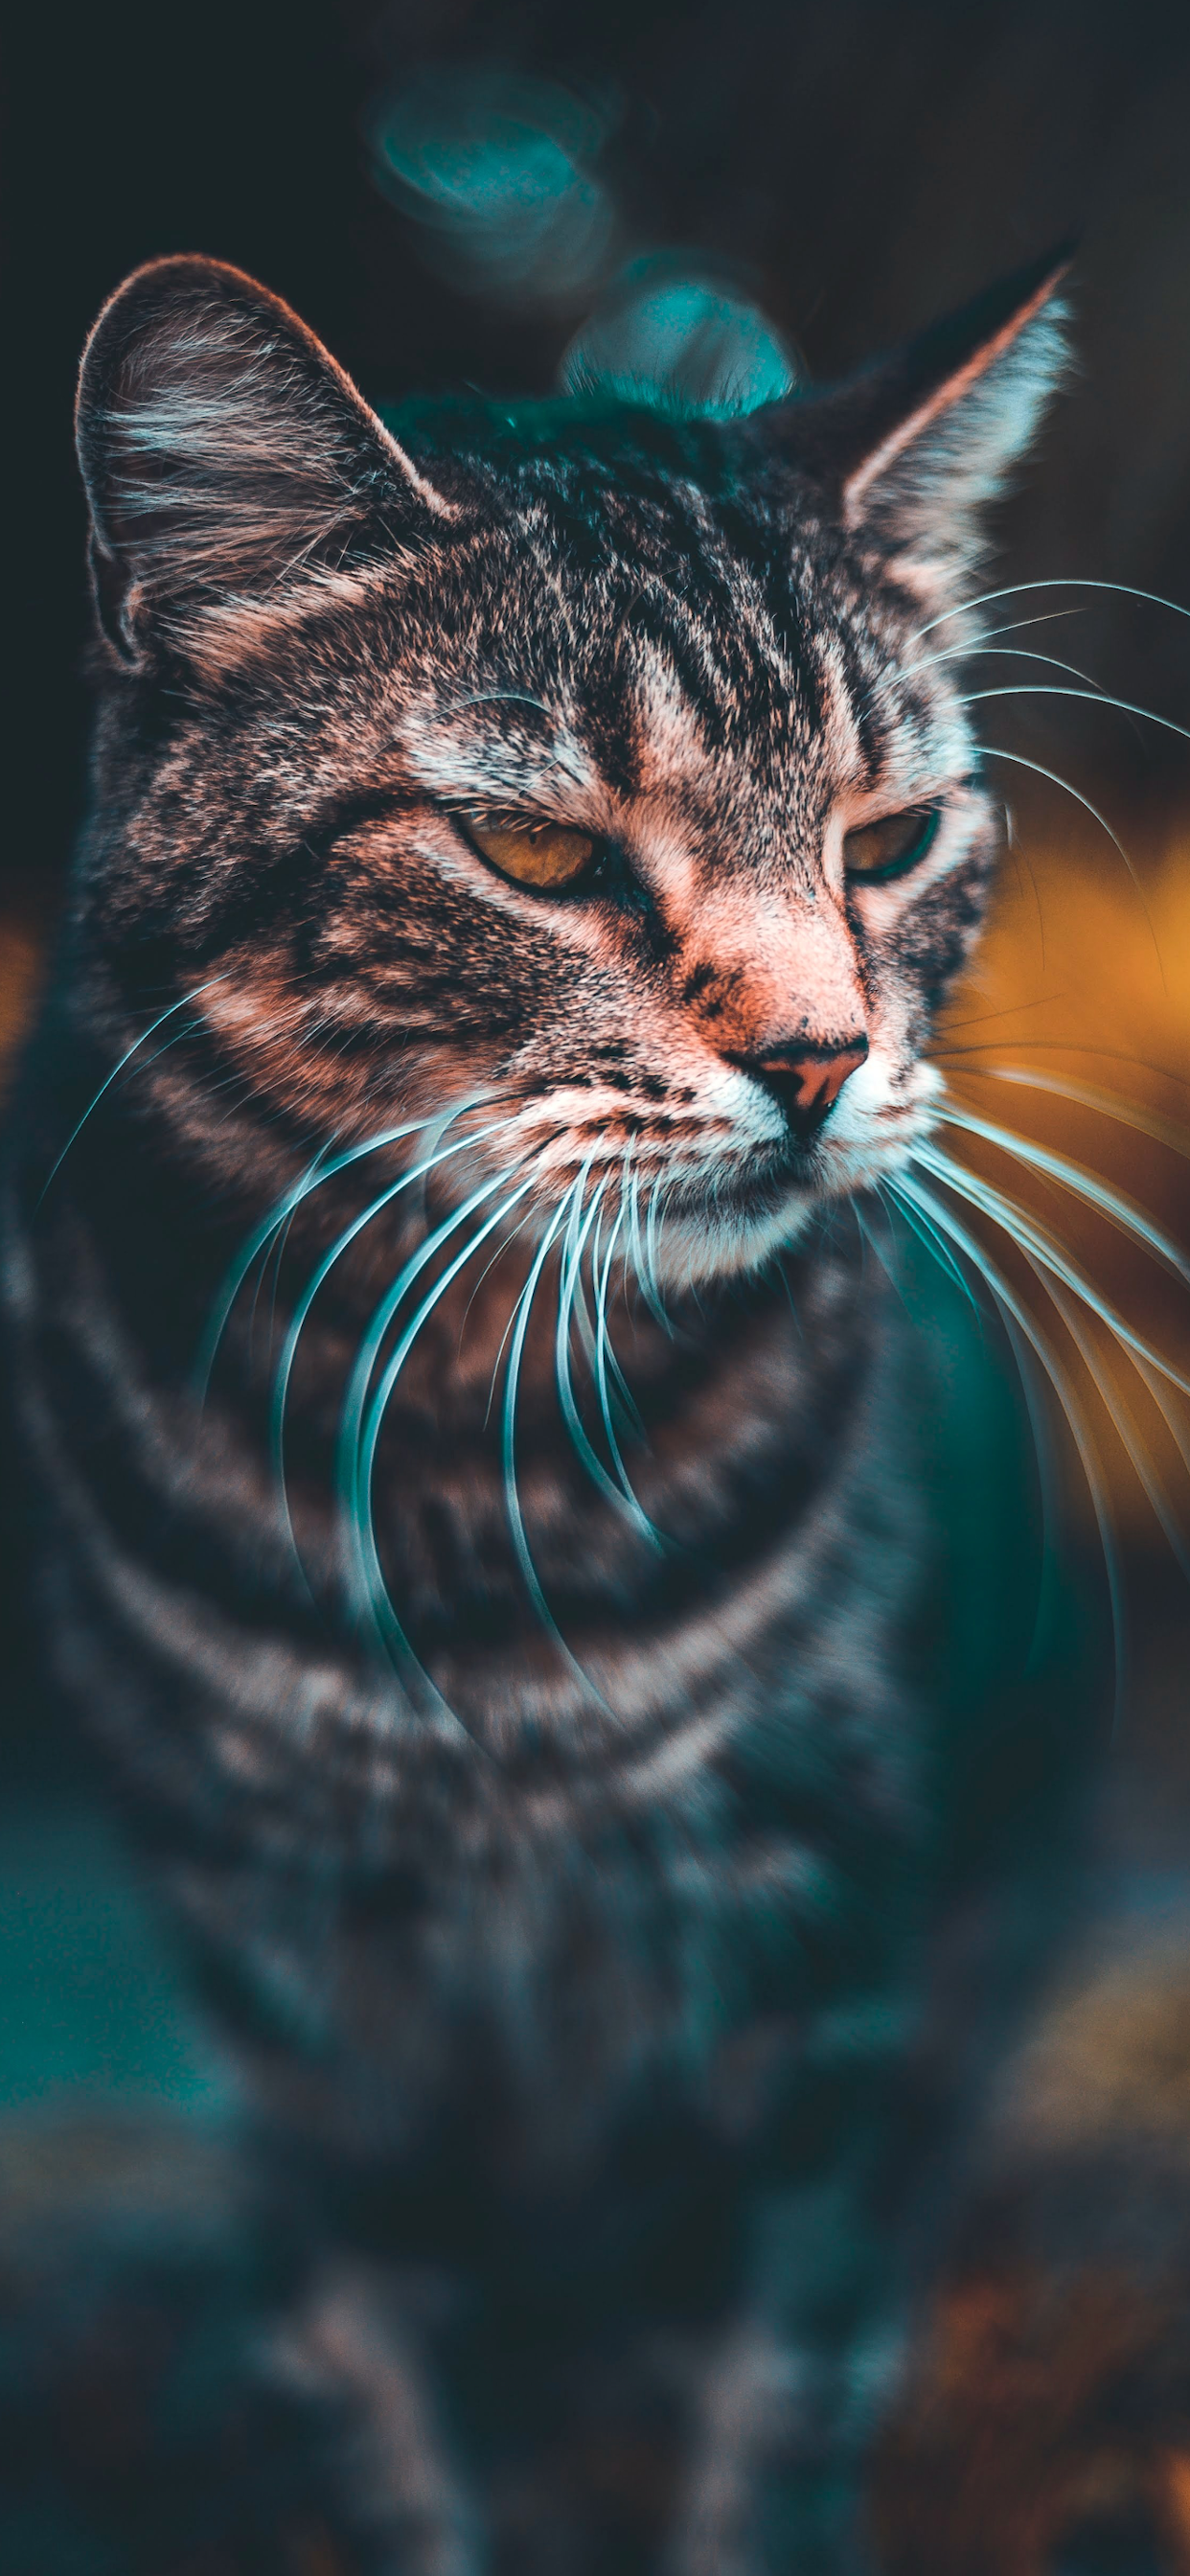 iPhone wallpapers cat wild naples Fonds d'écran iPhone du 04/09/2019